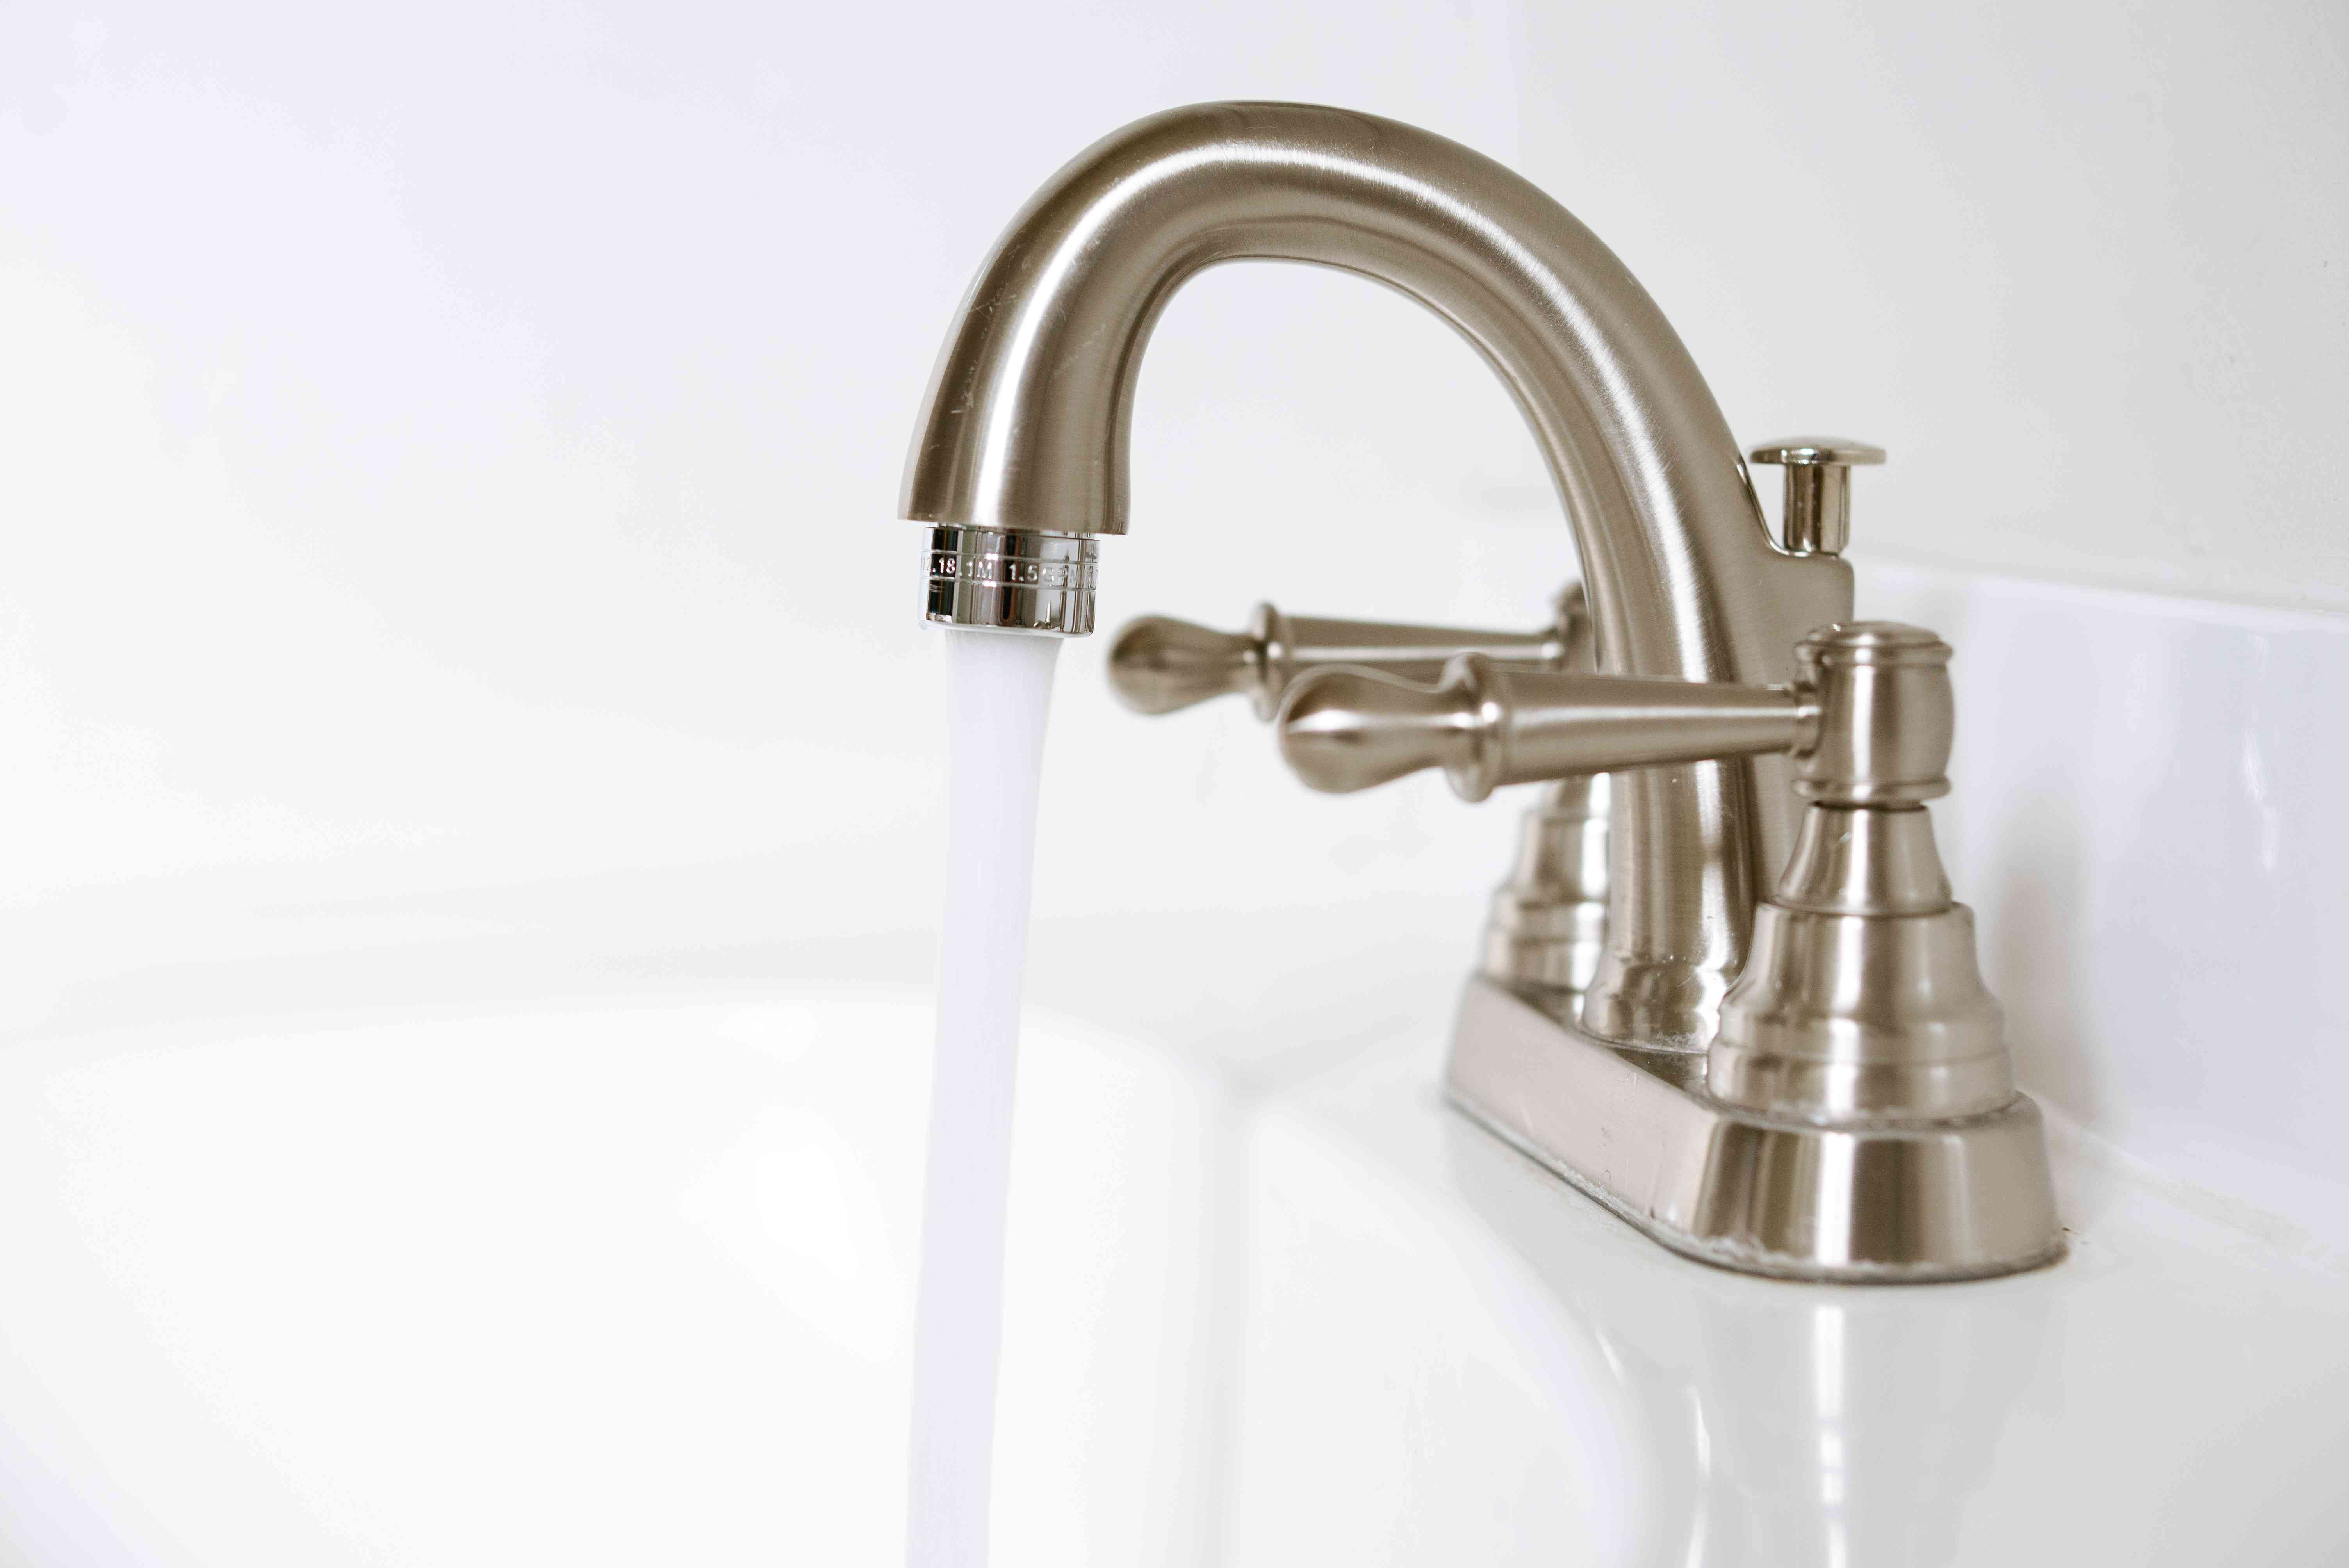 Faucet running with flowing water to test aerator